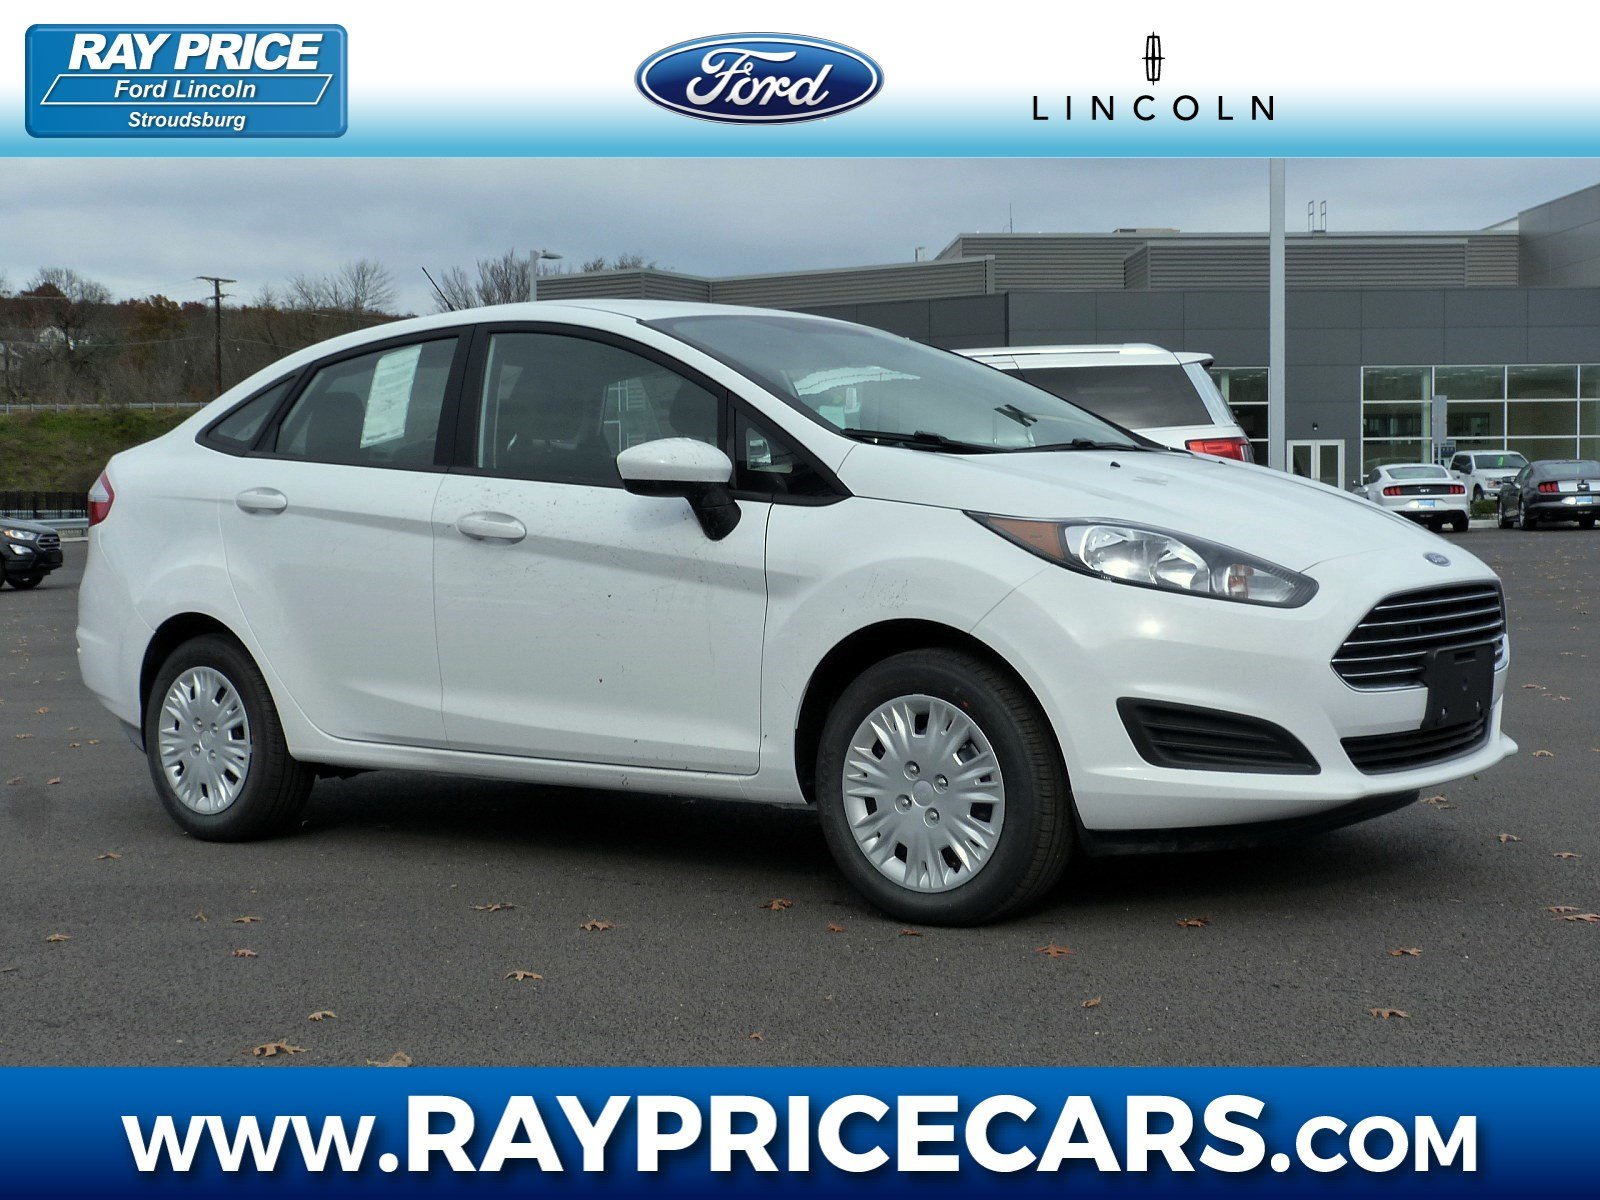 Ford Dealer Stroudsburg Pa Ray Price Stroud Ford